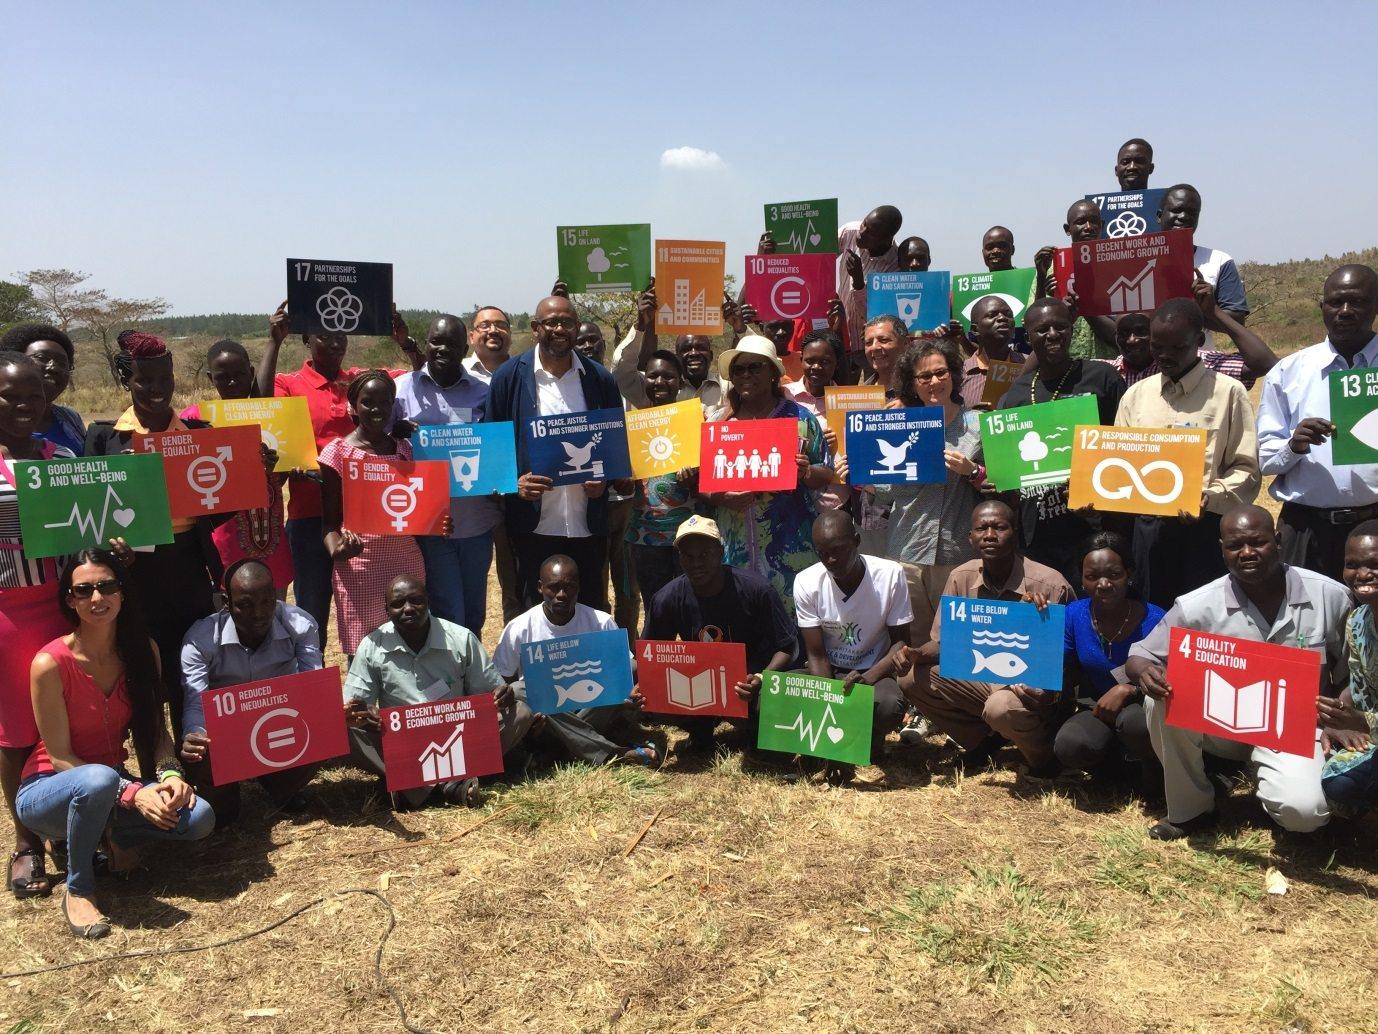 Forest Whitaker shares the SDGs with young peacemakers from Uganda and South Sudan